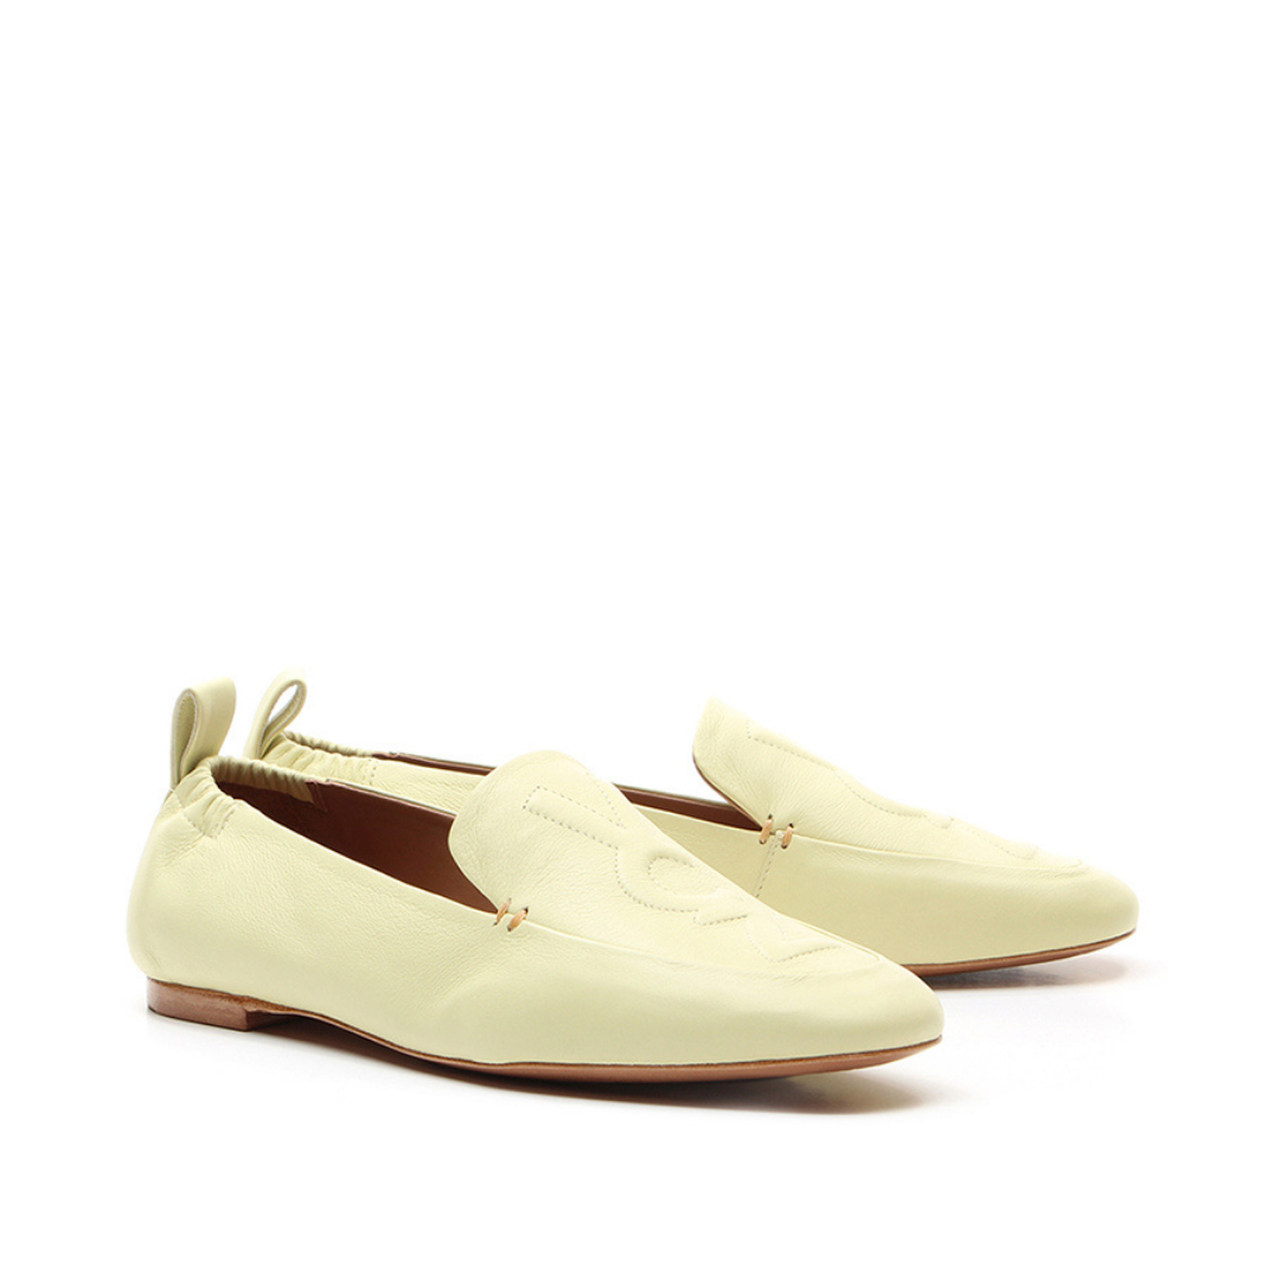 LOAFER COURO SHEEP MINT VICENZA